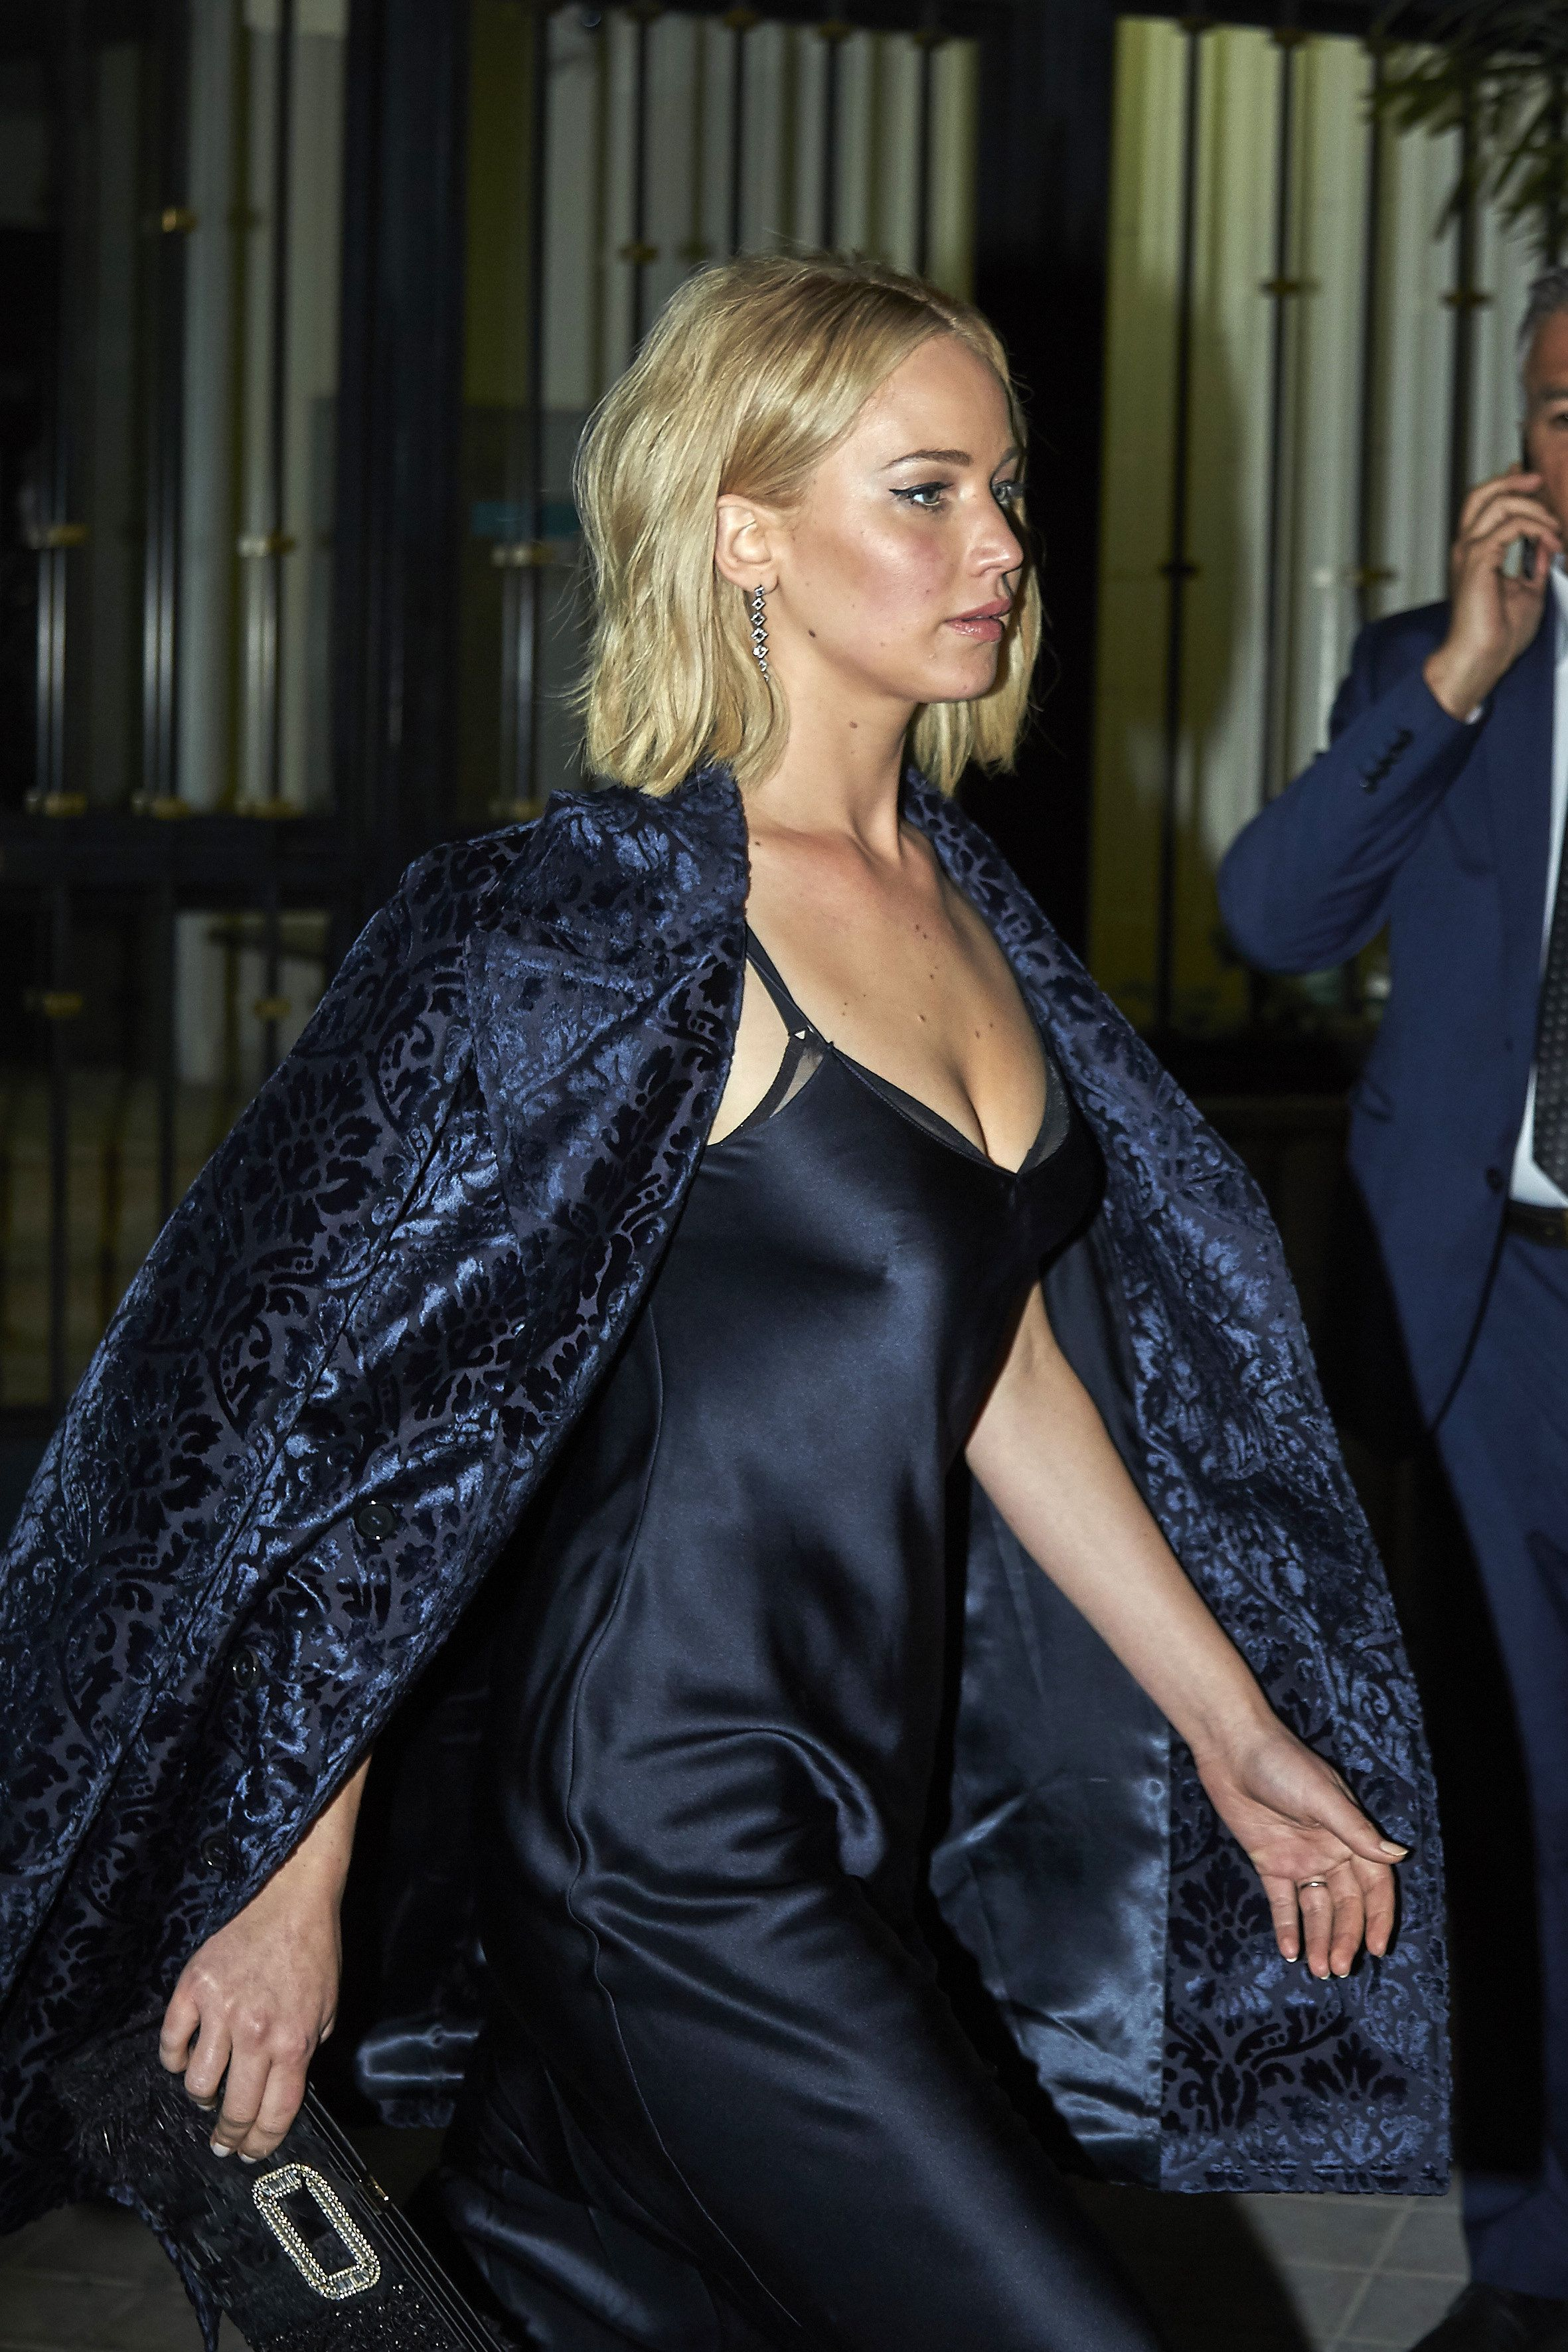 Jennifer lawrence leaving the asador donostiarra in madrid